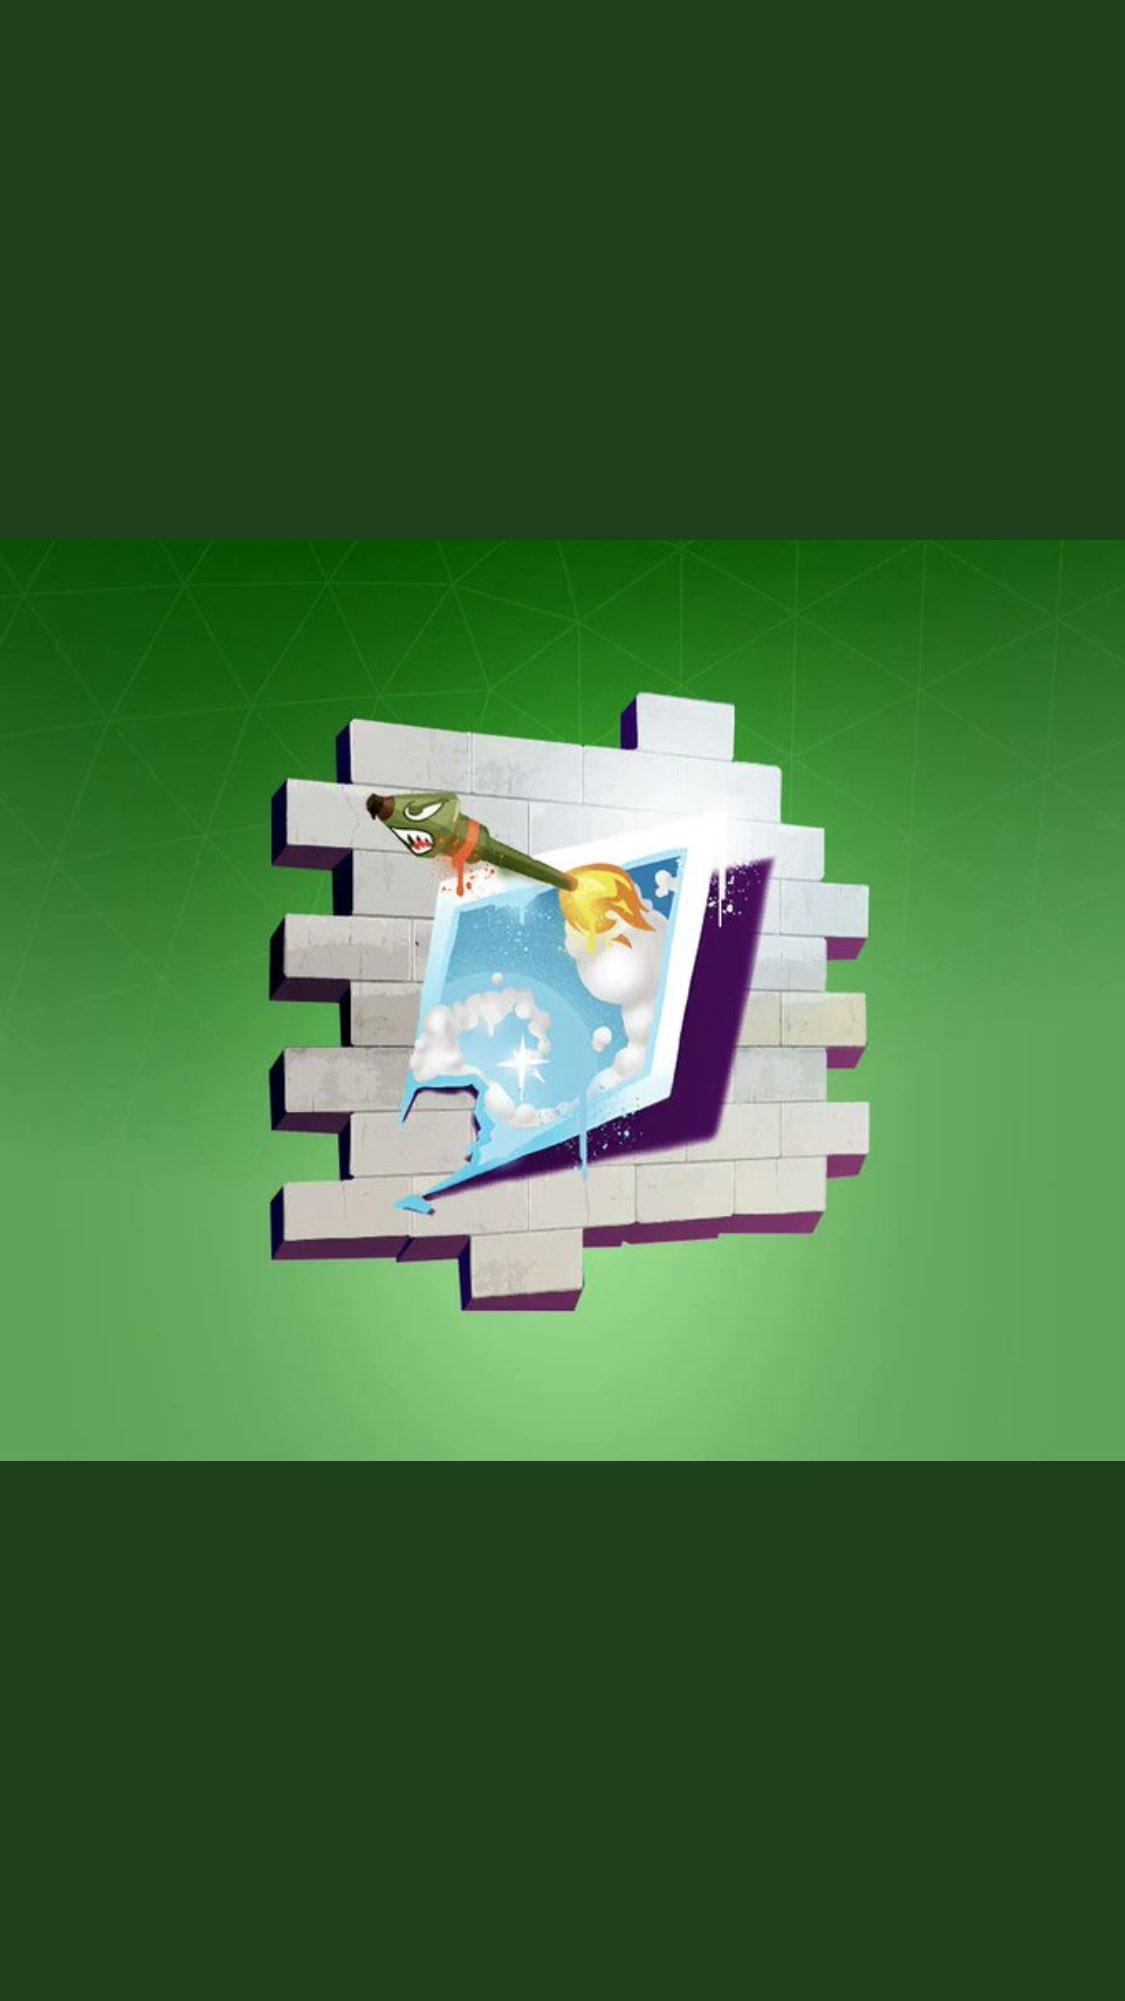 Fortnite Oceania Spray Codes Fortnite Leaks News Sur Twitter Free Exclusive Spray Codes For You Yxrz9 4e9zv Jdhwp Sdbyz Go To Https T Co D5a3fbg85n I Hope You Enjoy Fortnite Spraycode Spraycodes Https T Co Asll62s3vo